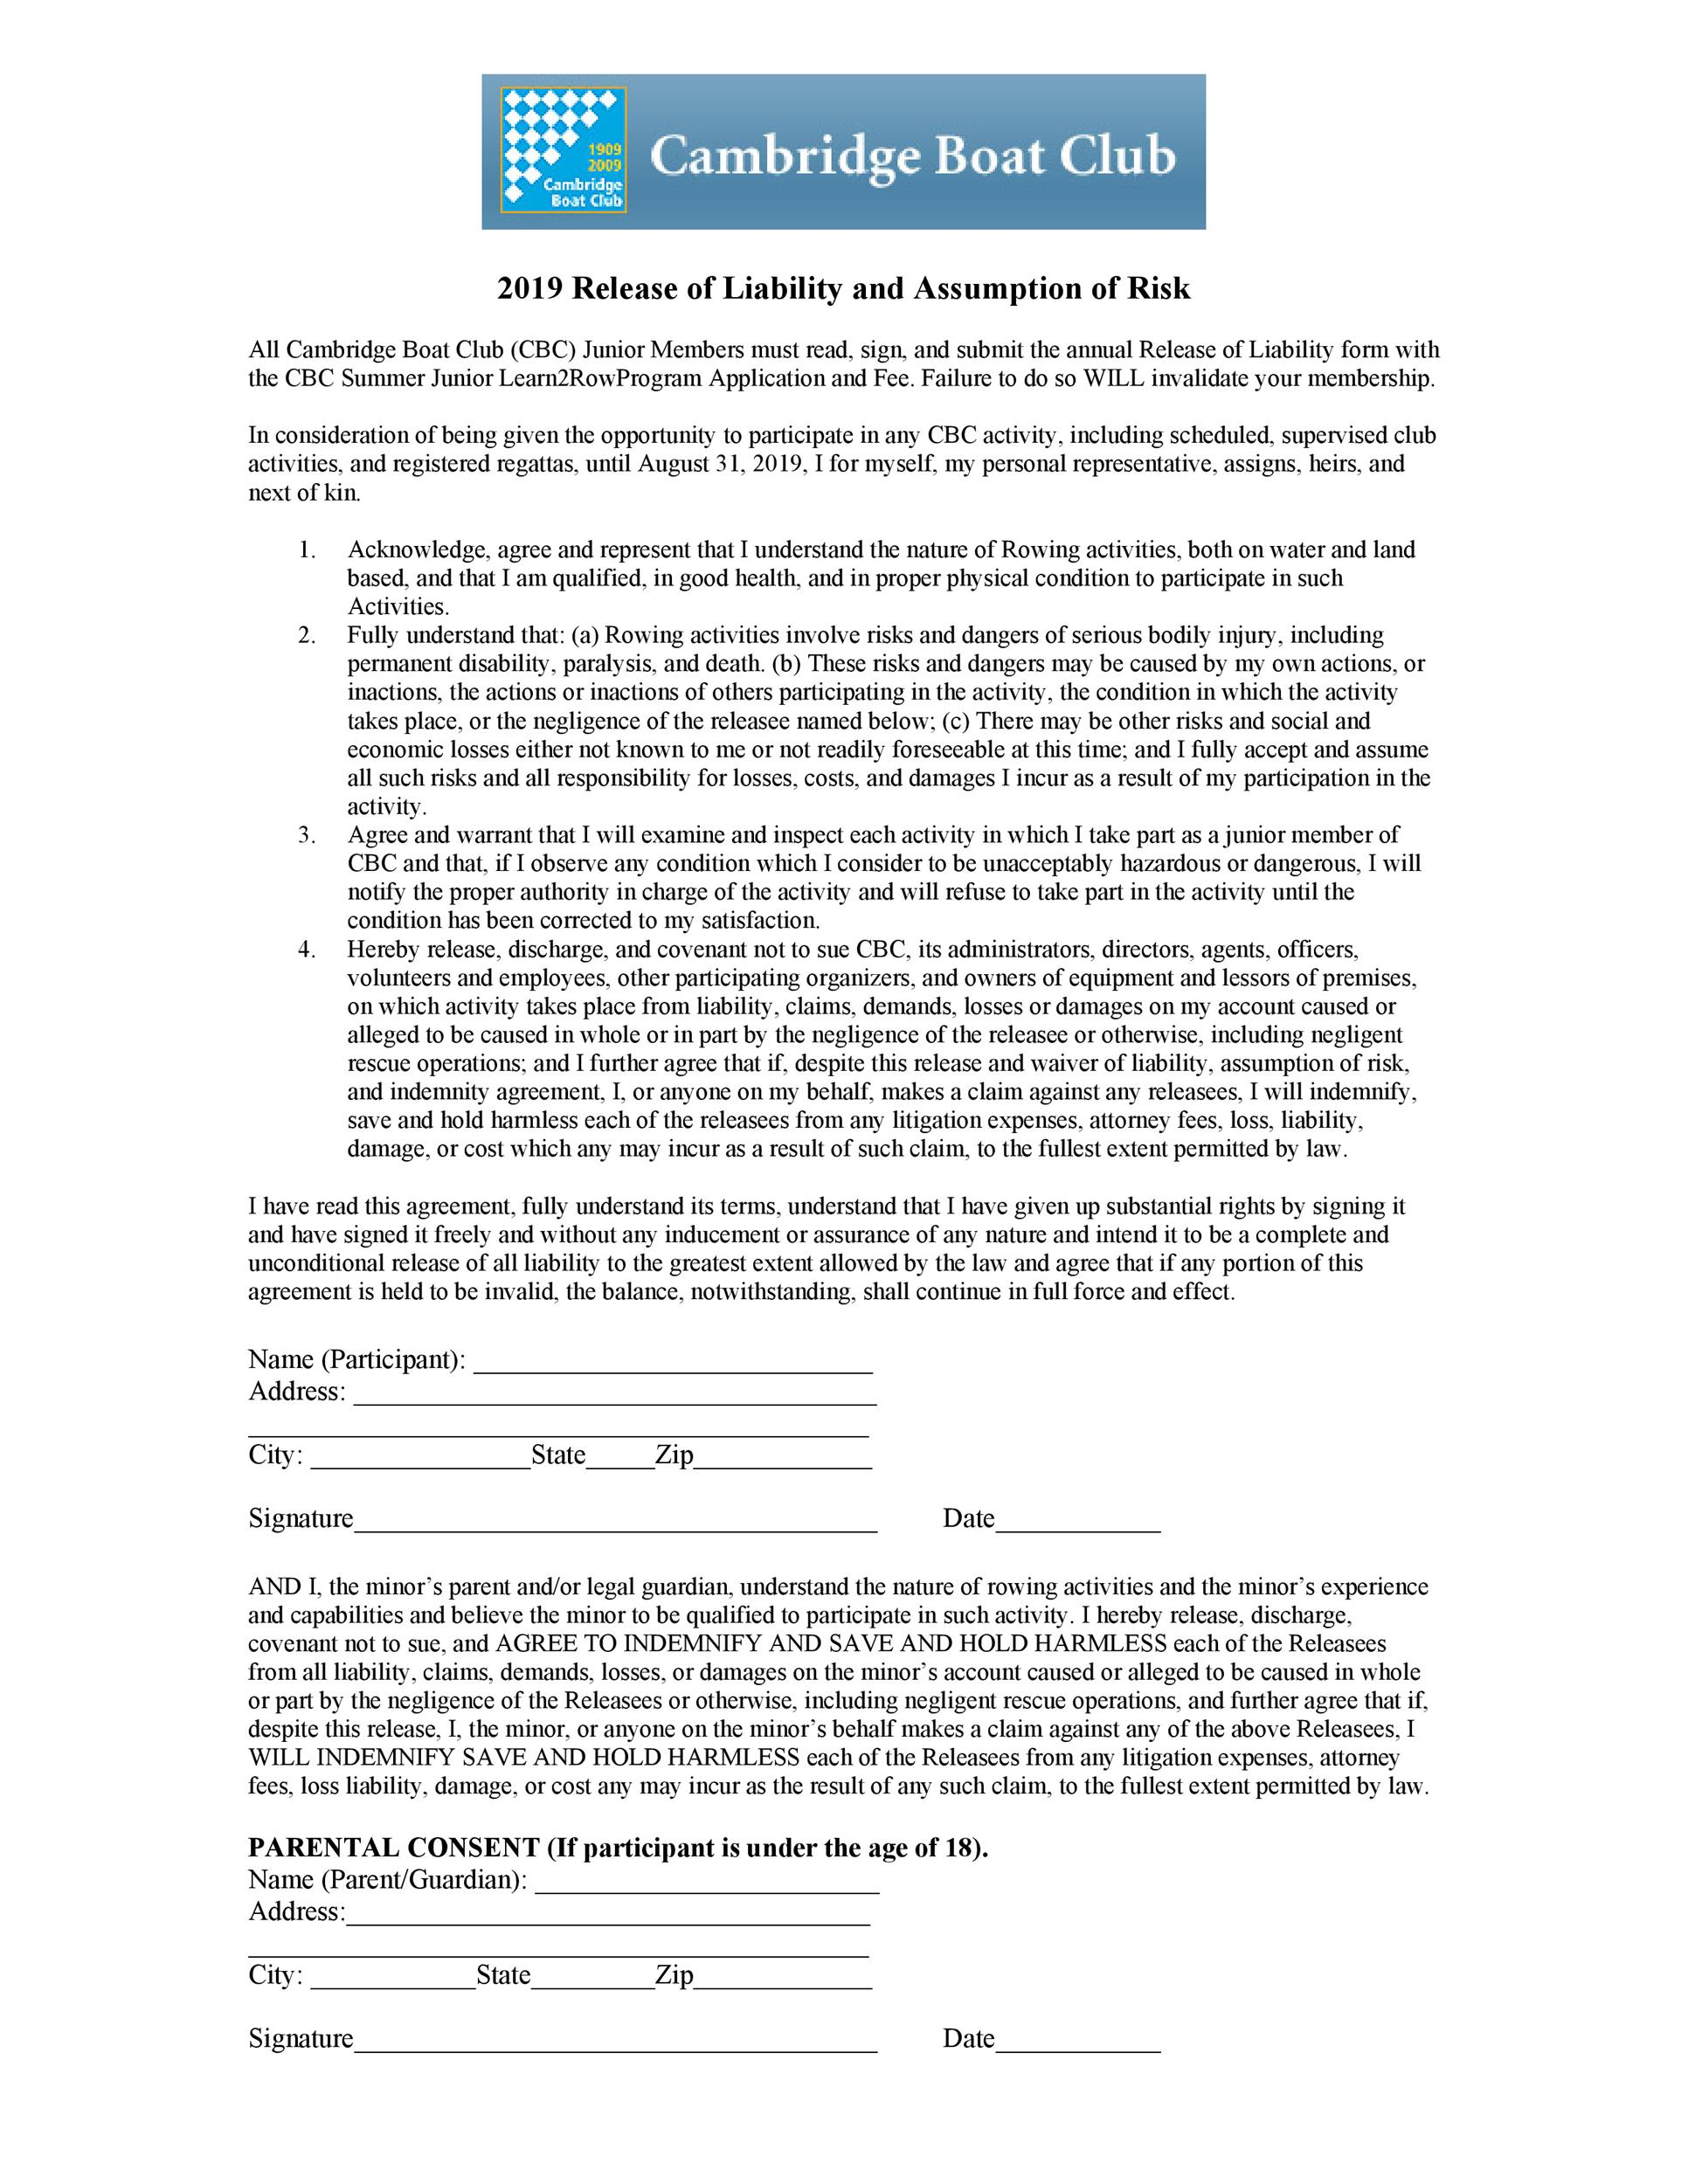 Free release of liability form 12